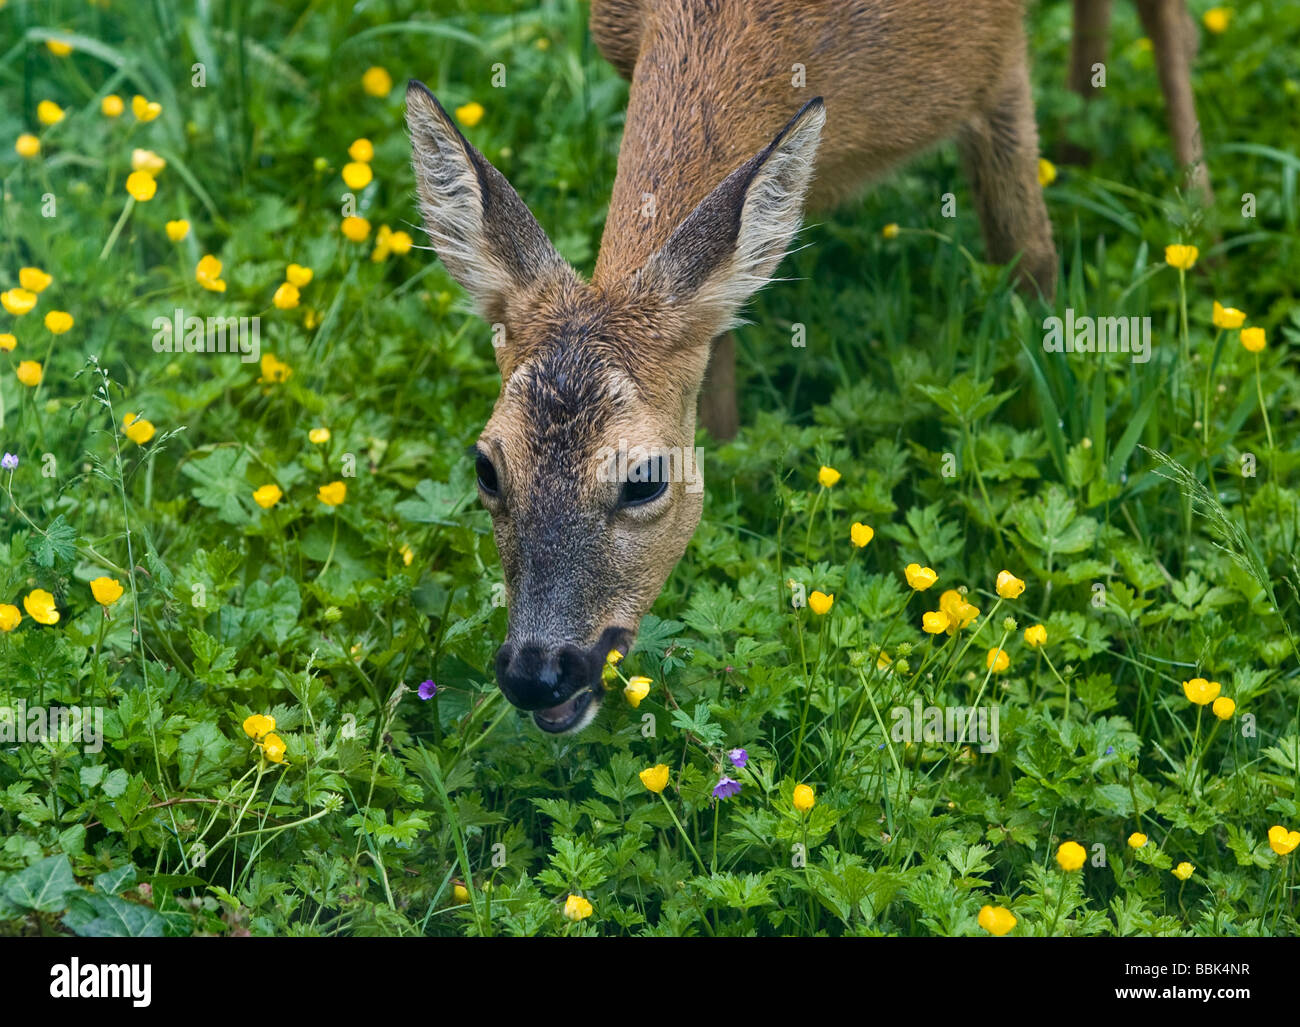 how to stop deer from eating flowers